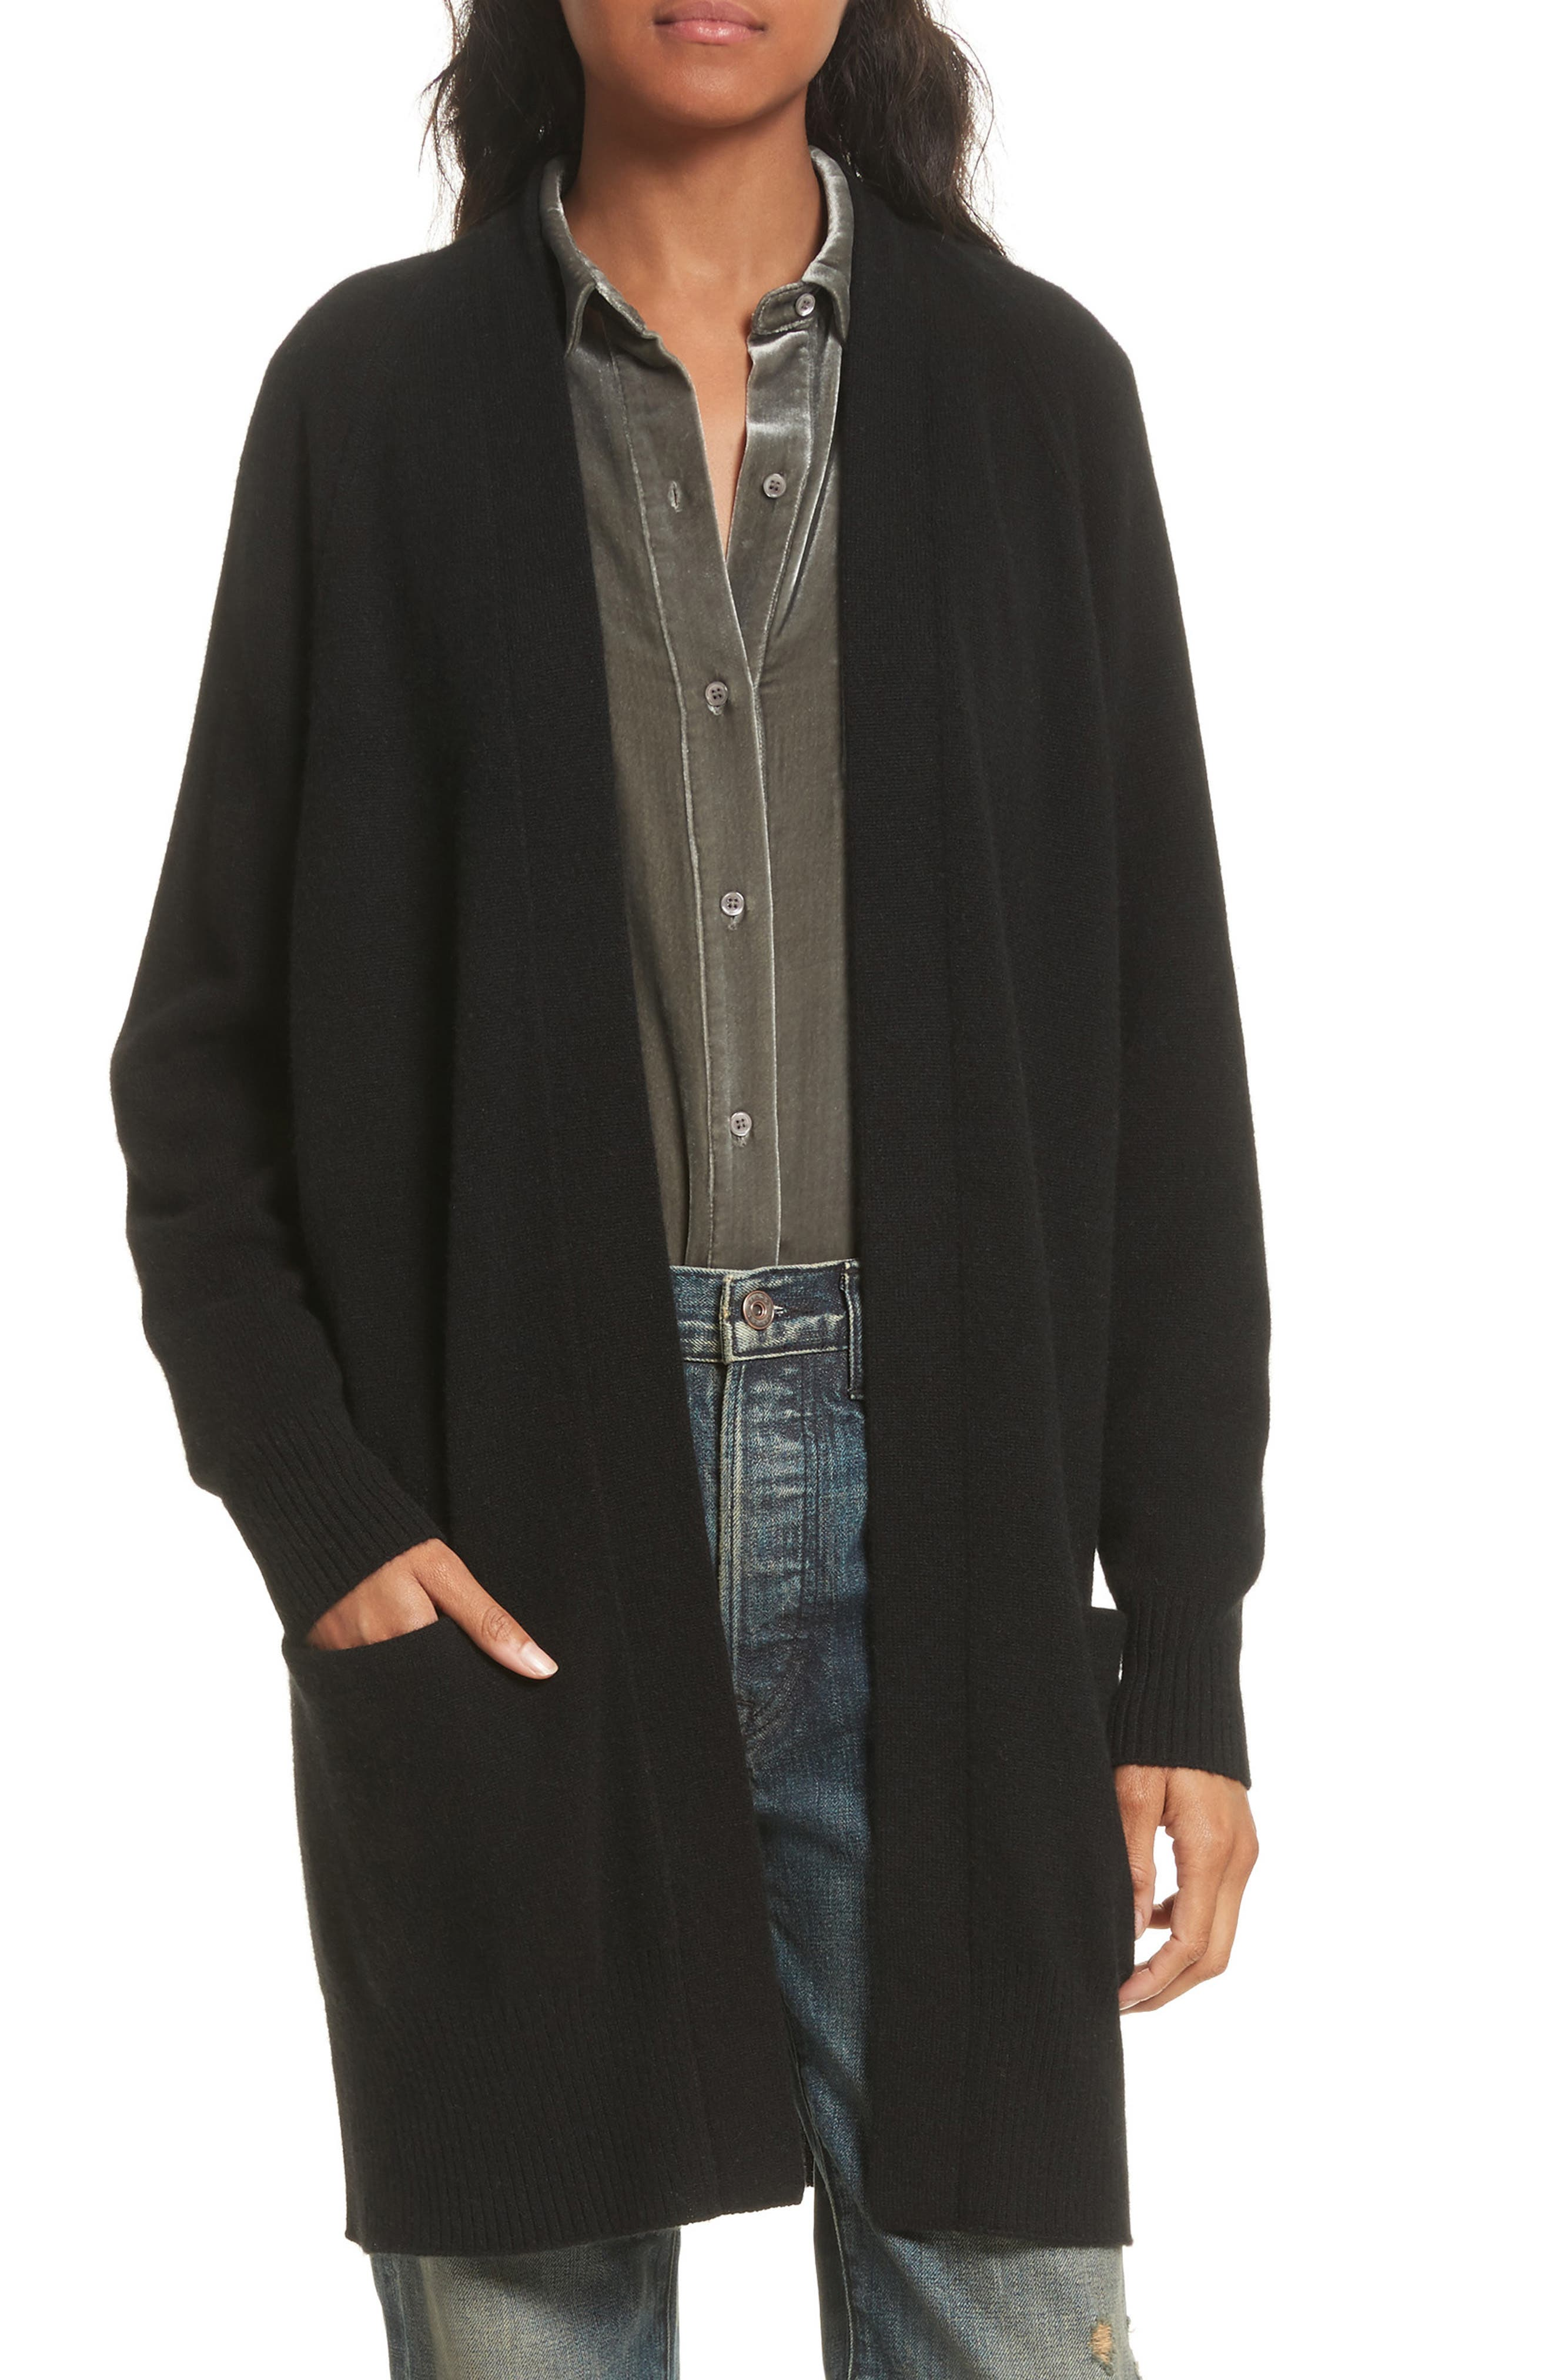 Black Sweaters & Sweatshirts, Cowl Necks, Cable Knits | Nordstrom ...